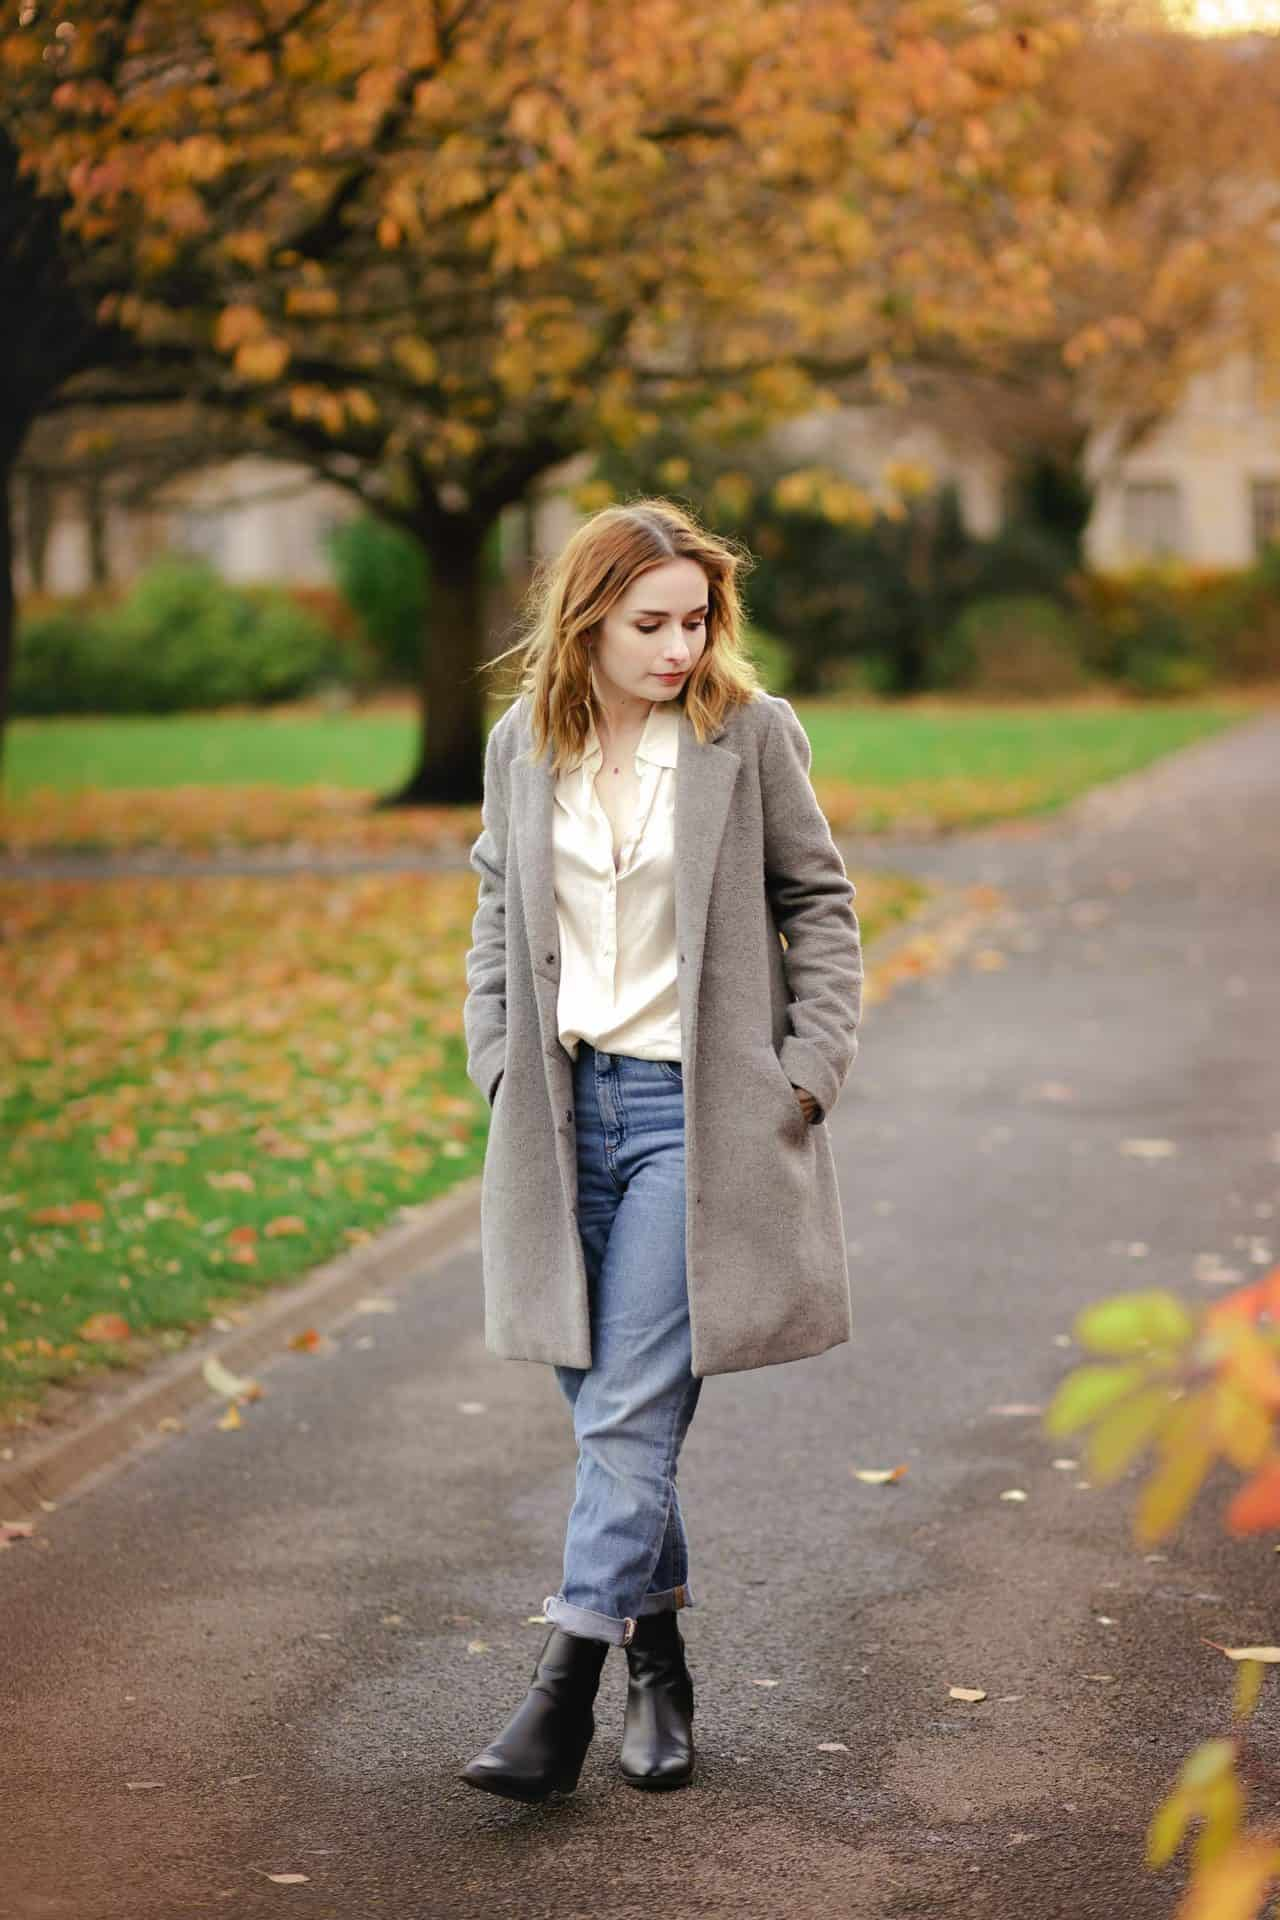 full length outfit photo of a girl wearing a cream silk shirt, blue jeans and grey longline coat standing amongst autumn leaves. how to pose for photos